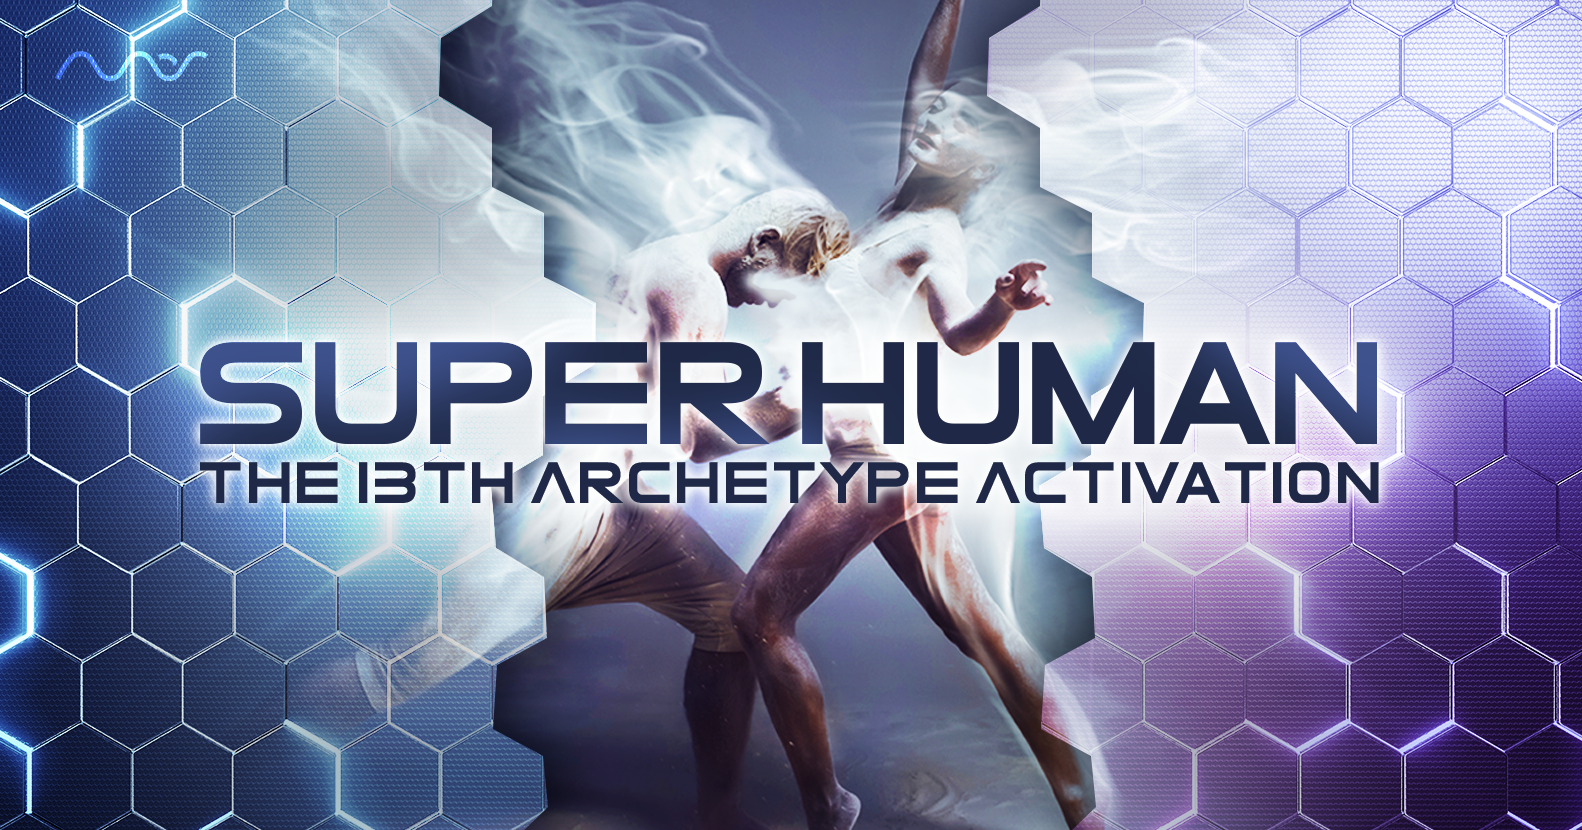 13th-archetype-super-human-mas-sajady-live-frequency-medimorphosis-b.png